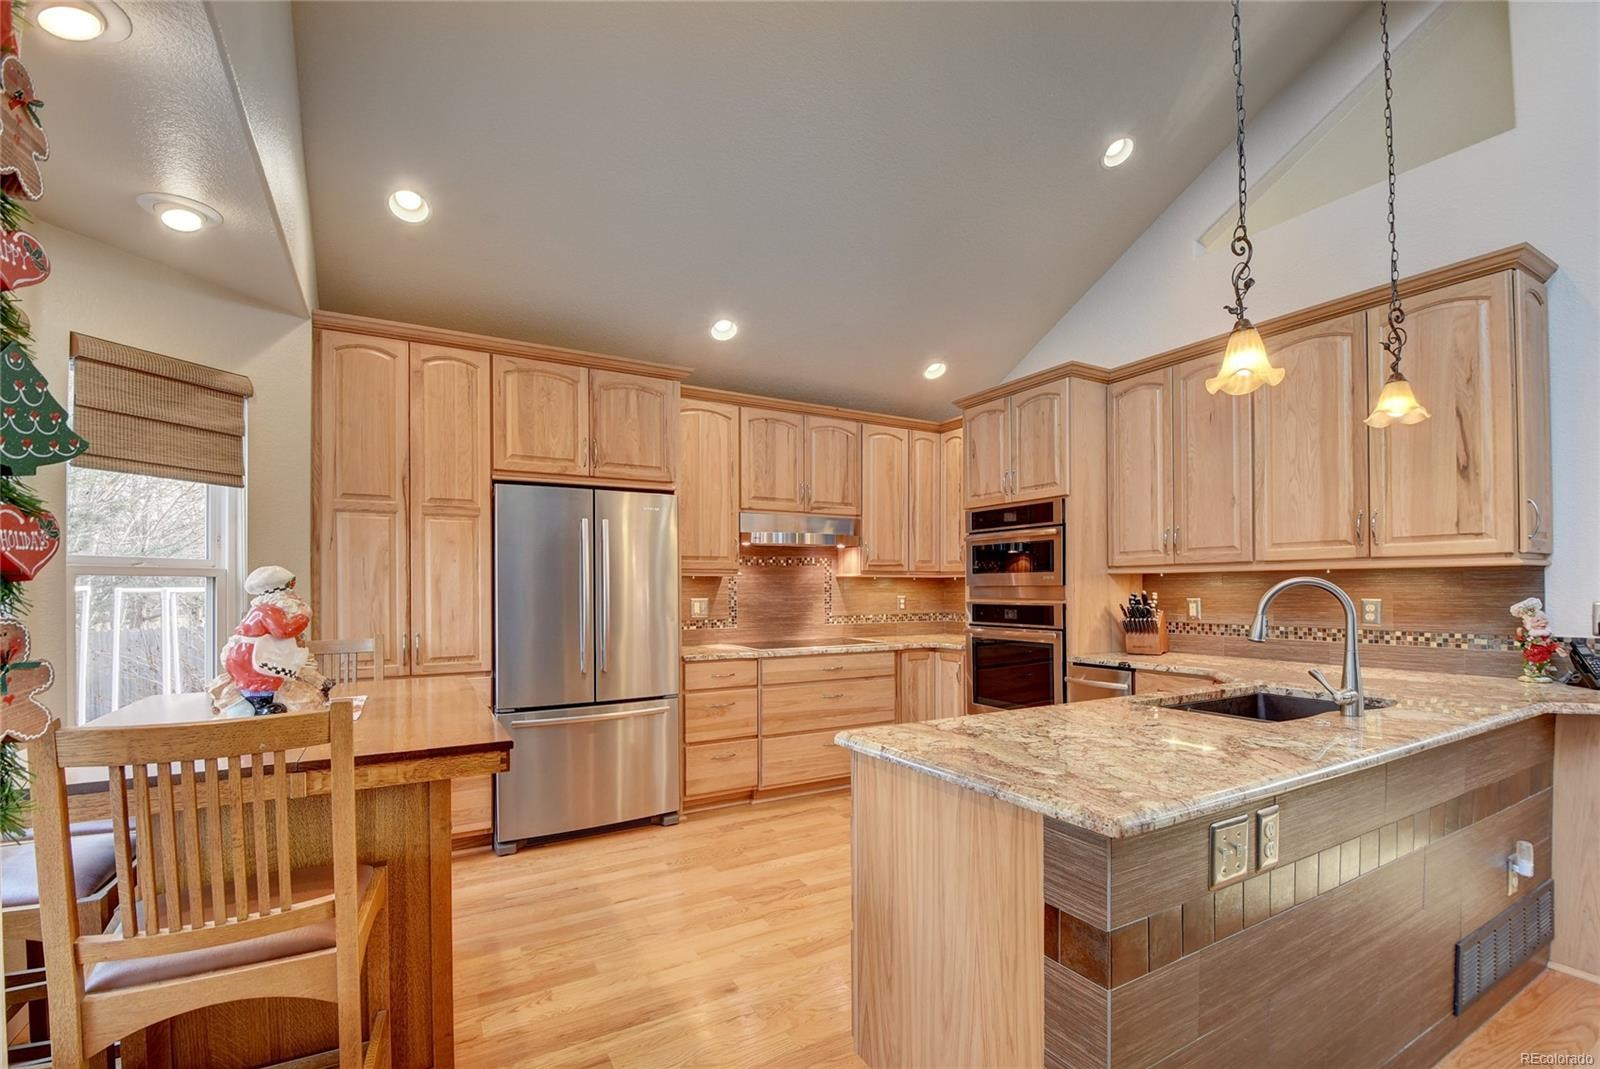 MLS# 9913436 - 9 - 5726 W 81st Place, Arvada, CO 80003